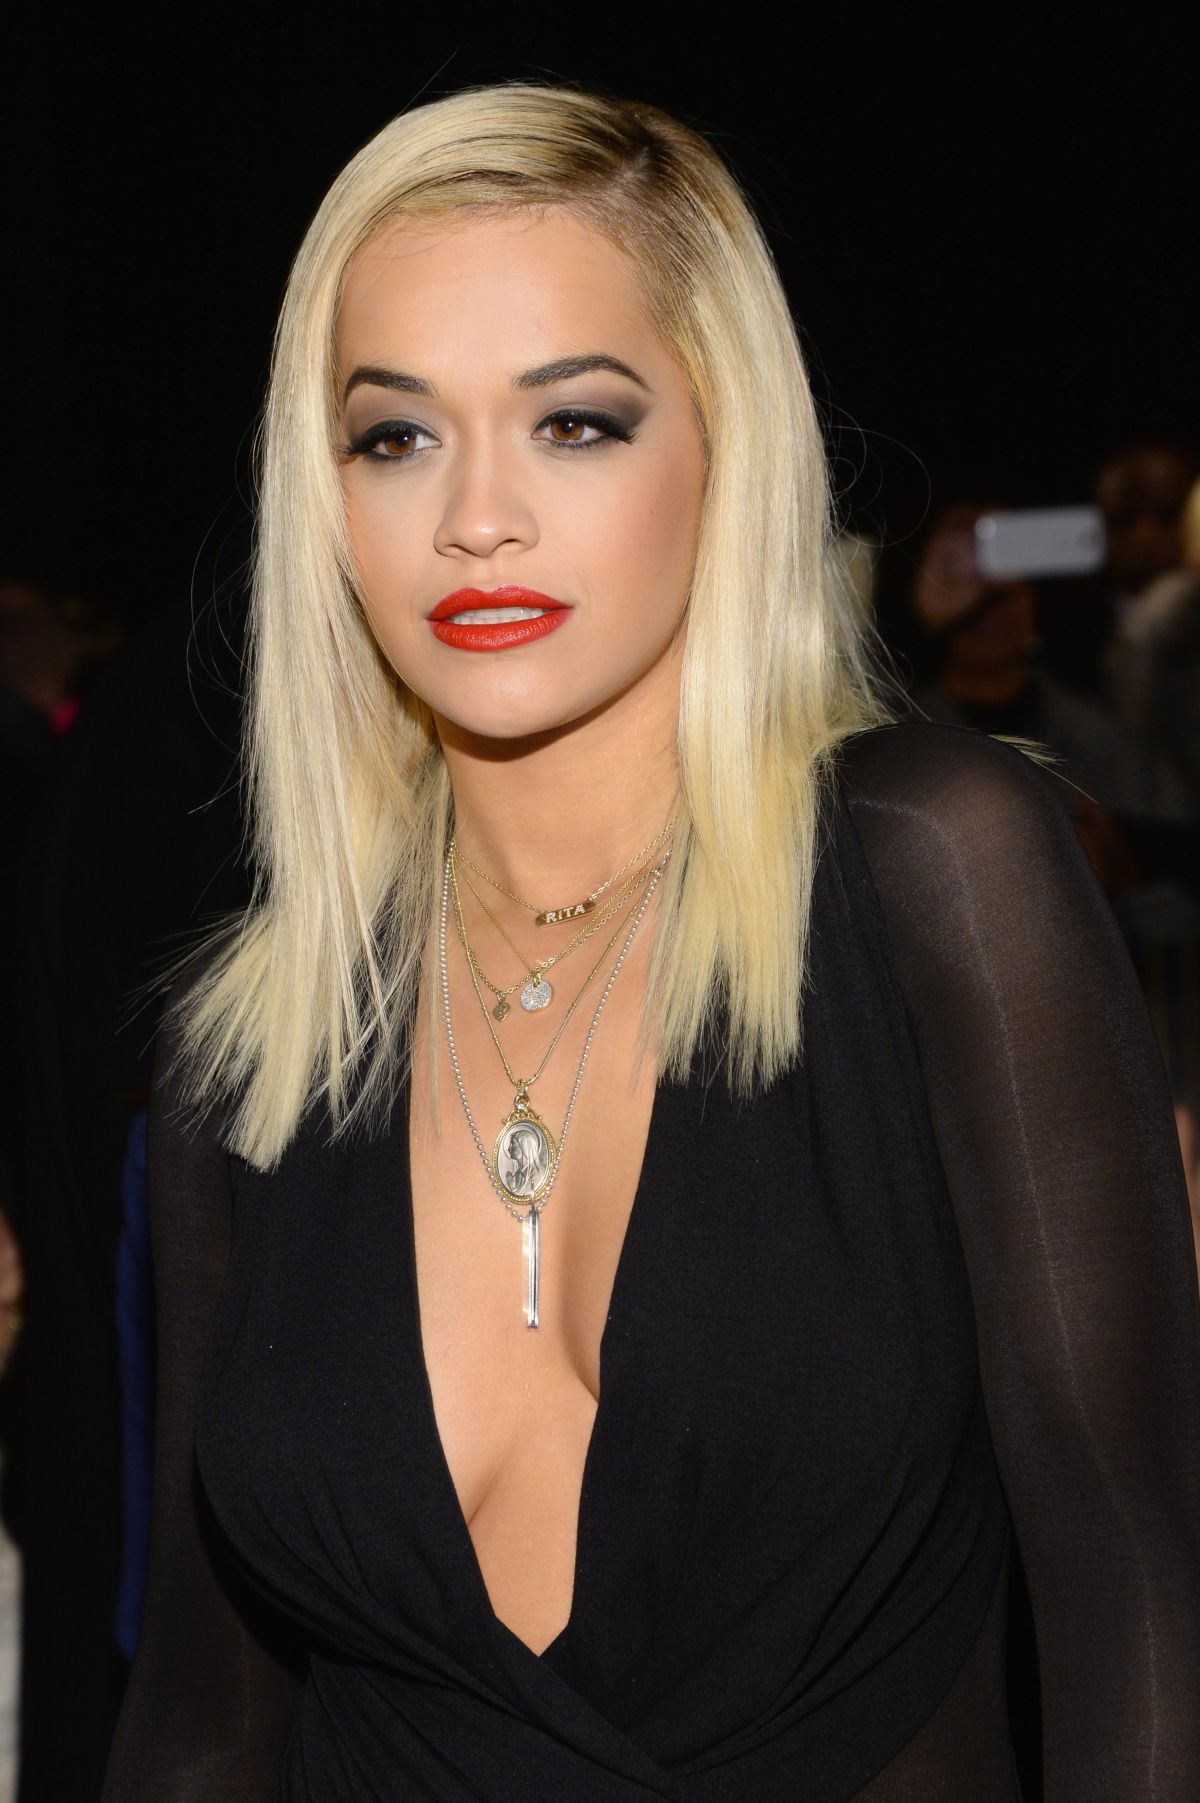 Rita ora at donna karan new york fashion show in nyc celebzz for Donna karen new york